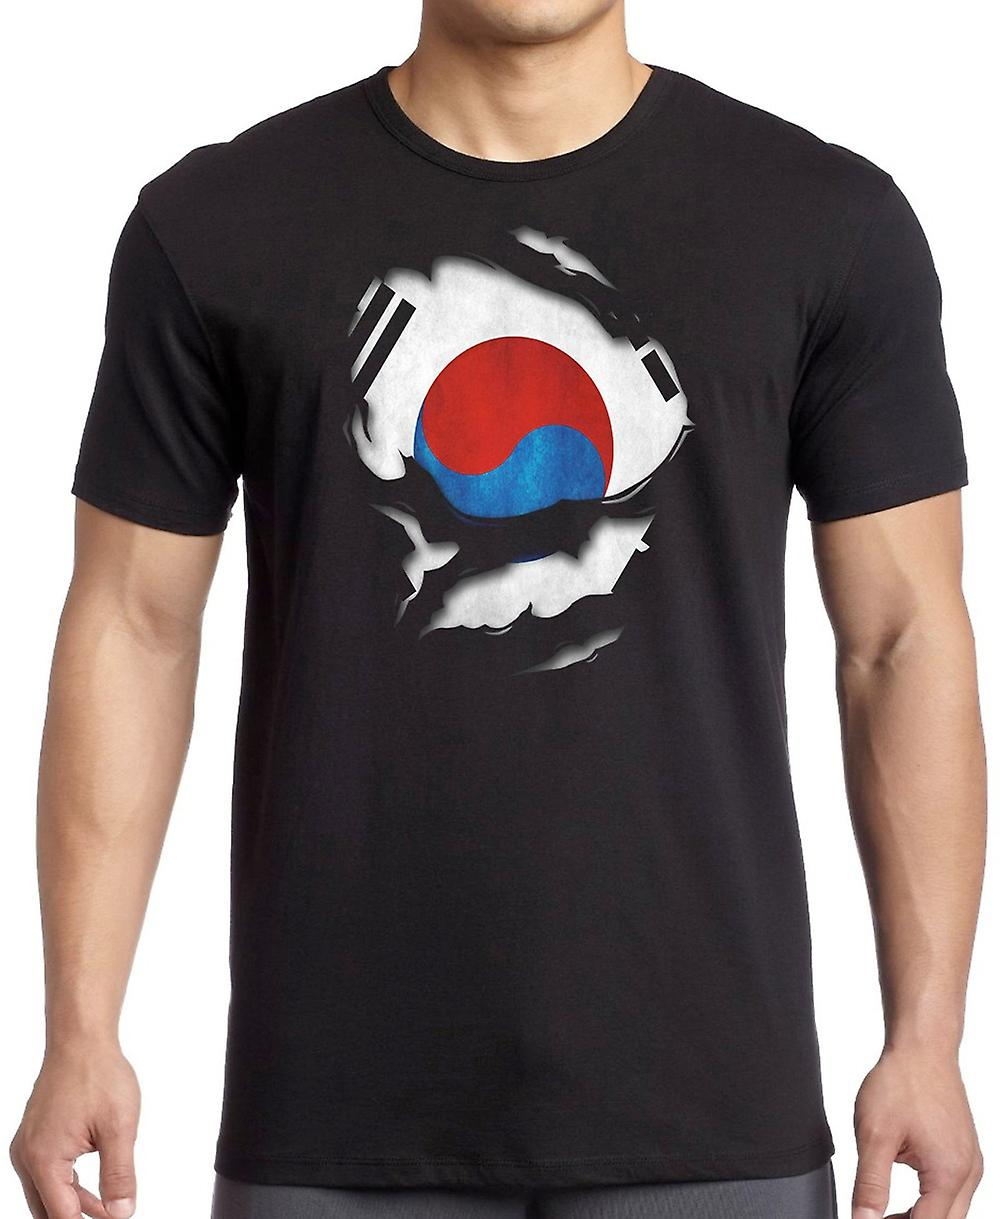 South Korea Ripped Effect Under Shirt Kids T Shirt